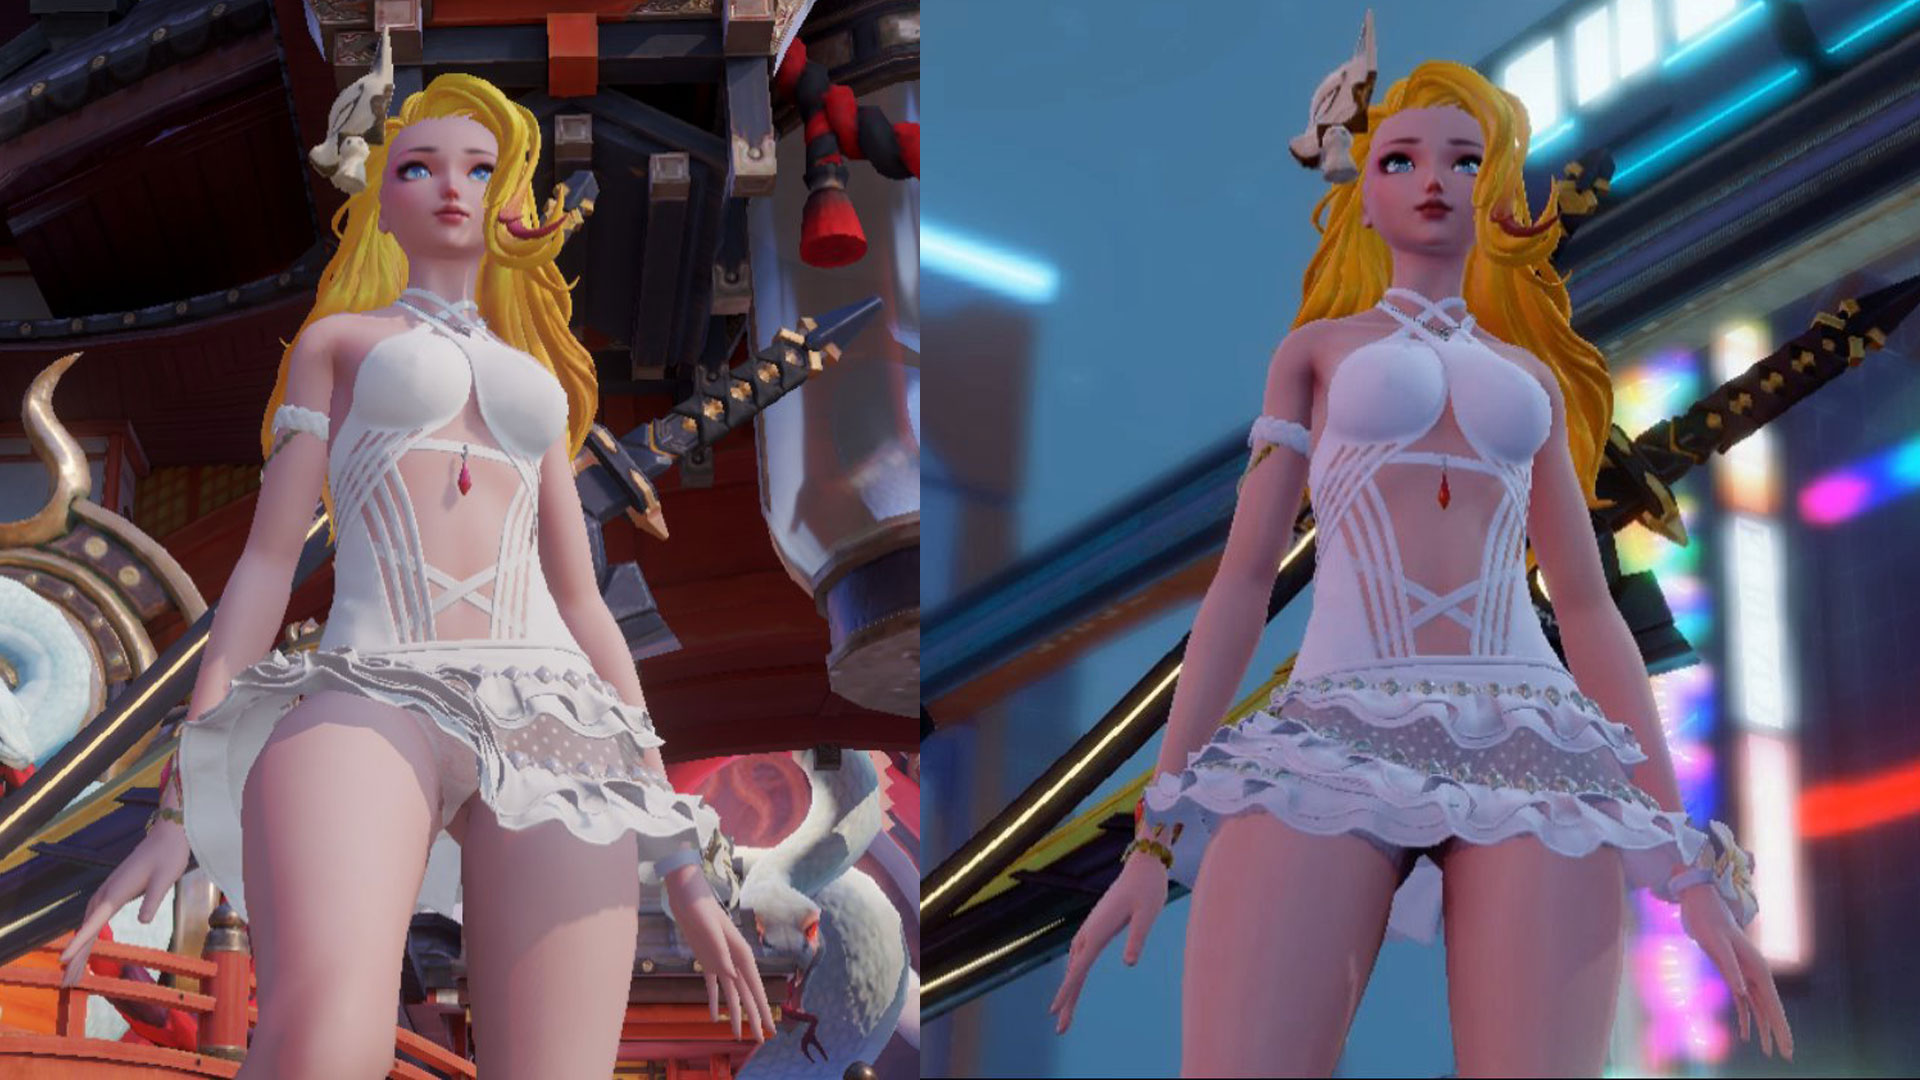 Dragon Raja Uncensored versus Censored comparison pic